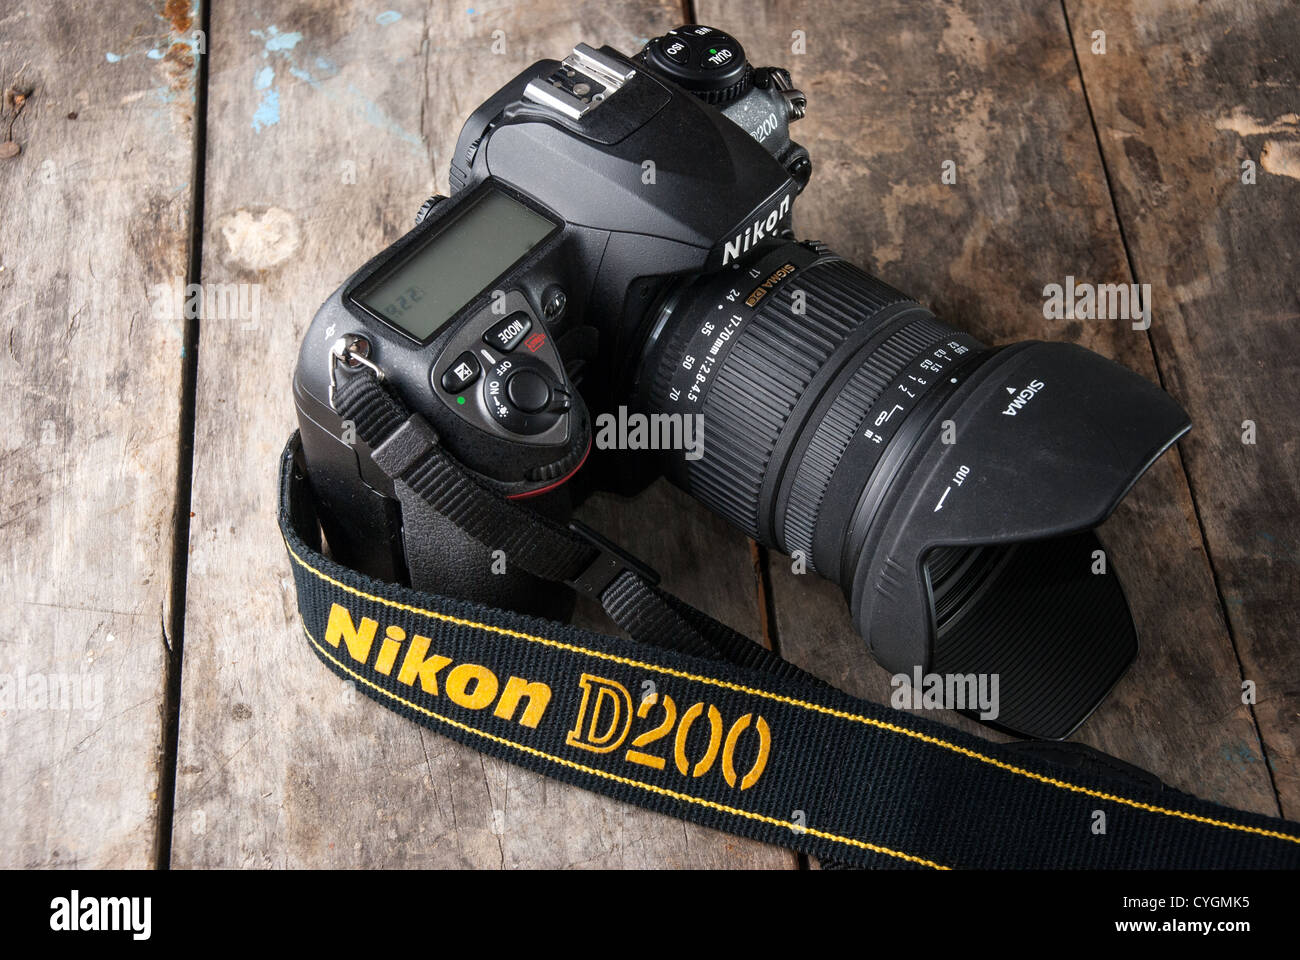 -Nikon D200 digital SLR with Sigma 17-70 DC lens on old wooden table. Manufactured by Nikon and Sigma Corporation. - Stock Image